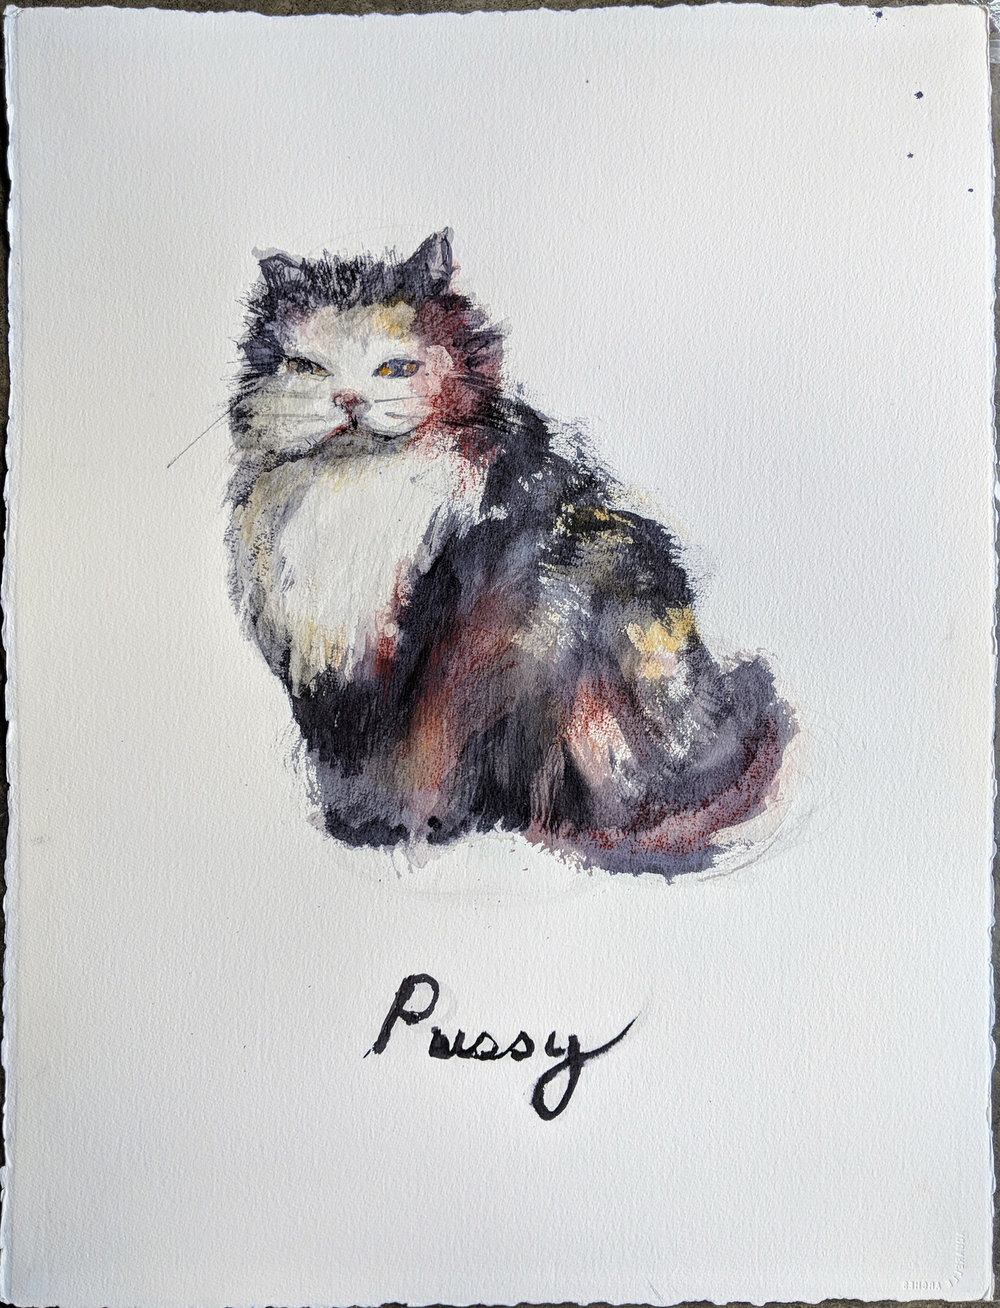 From My Pussy Prismacolor and Graphite on collage 23 x 30 inches LJA 194G